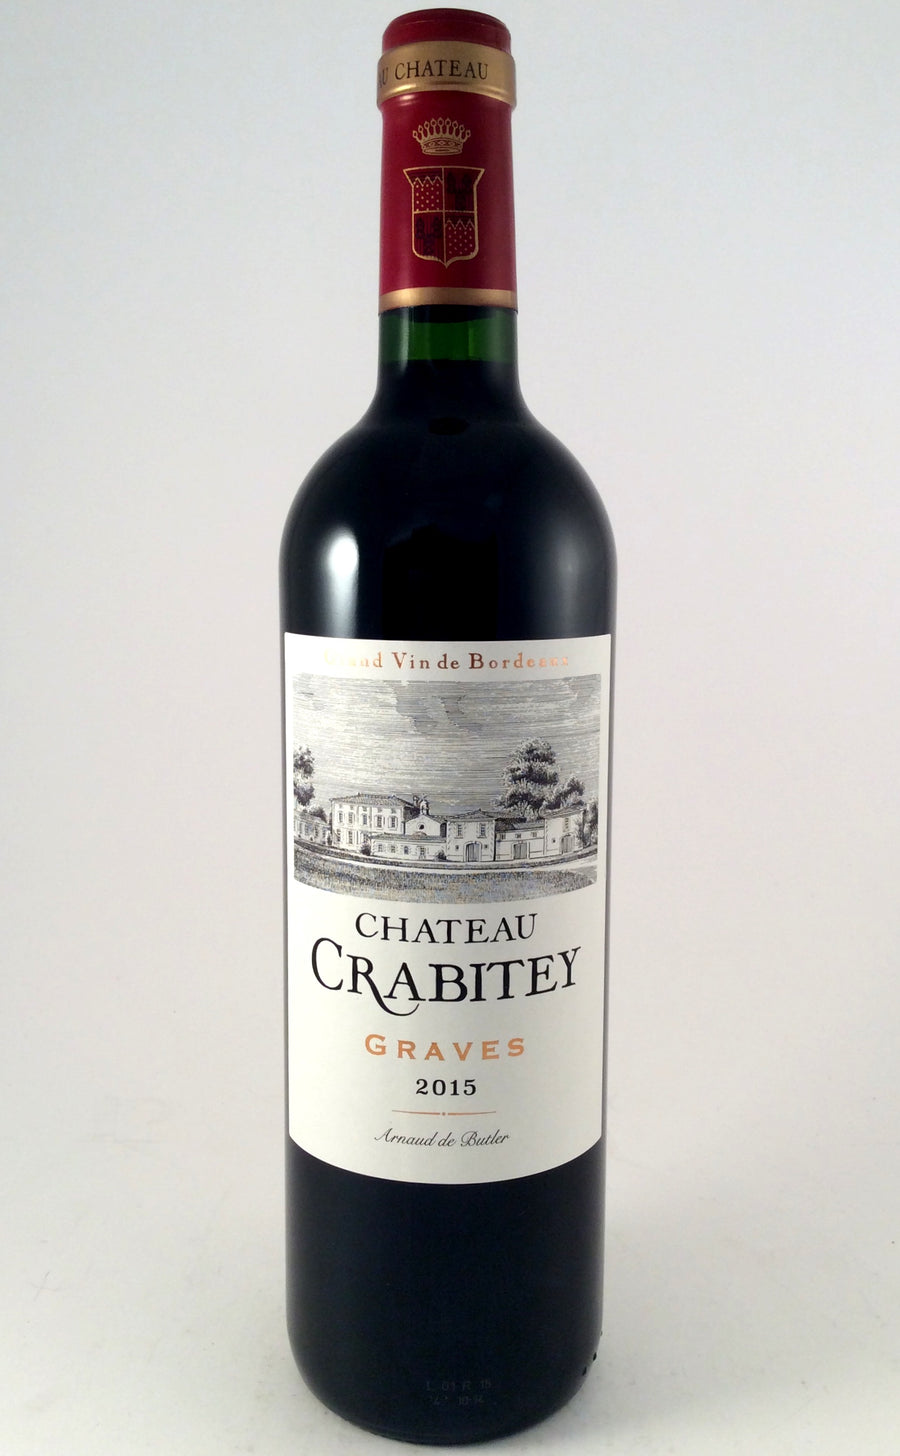 Chateau Crabitey Graves Rouge - Wineseeker